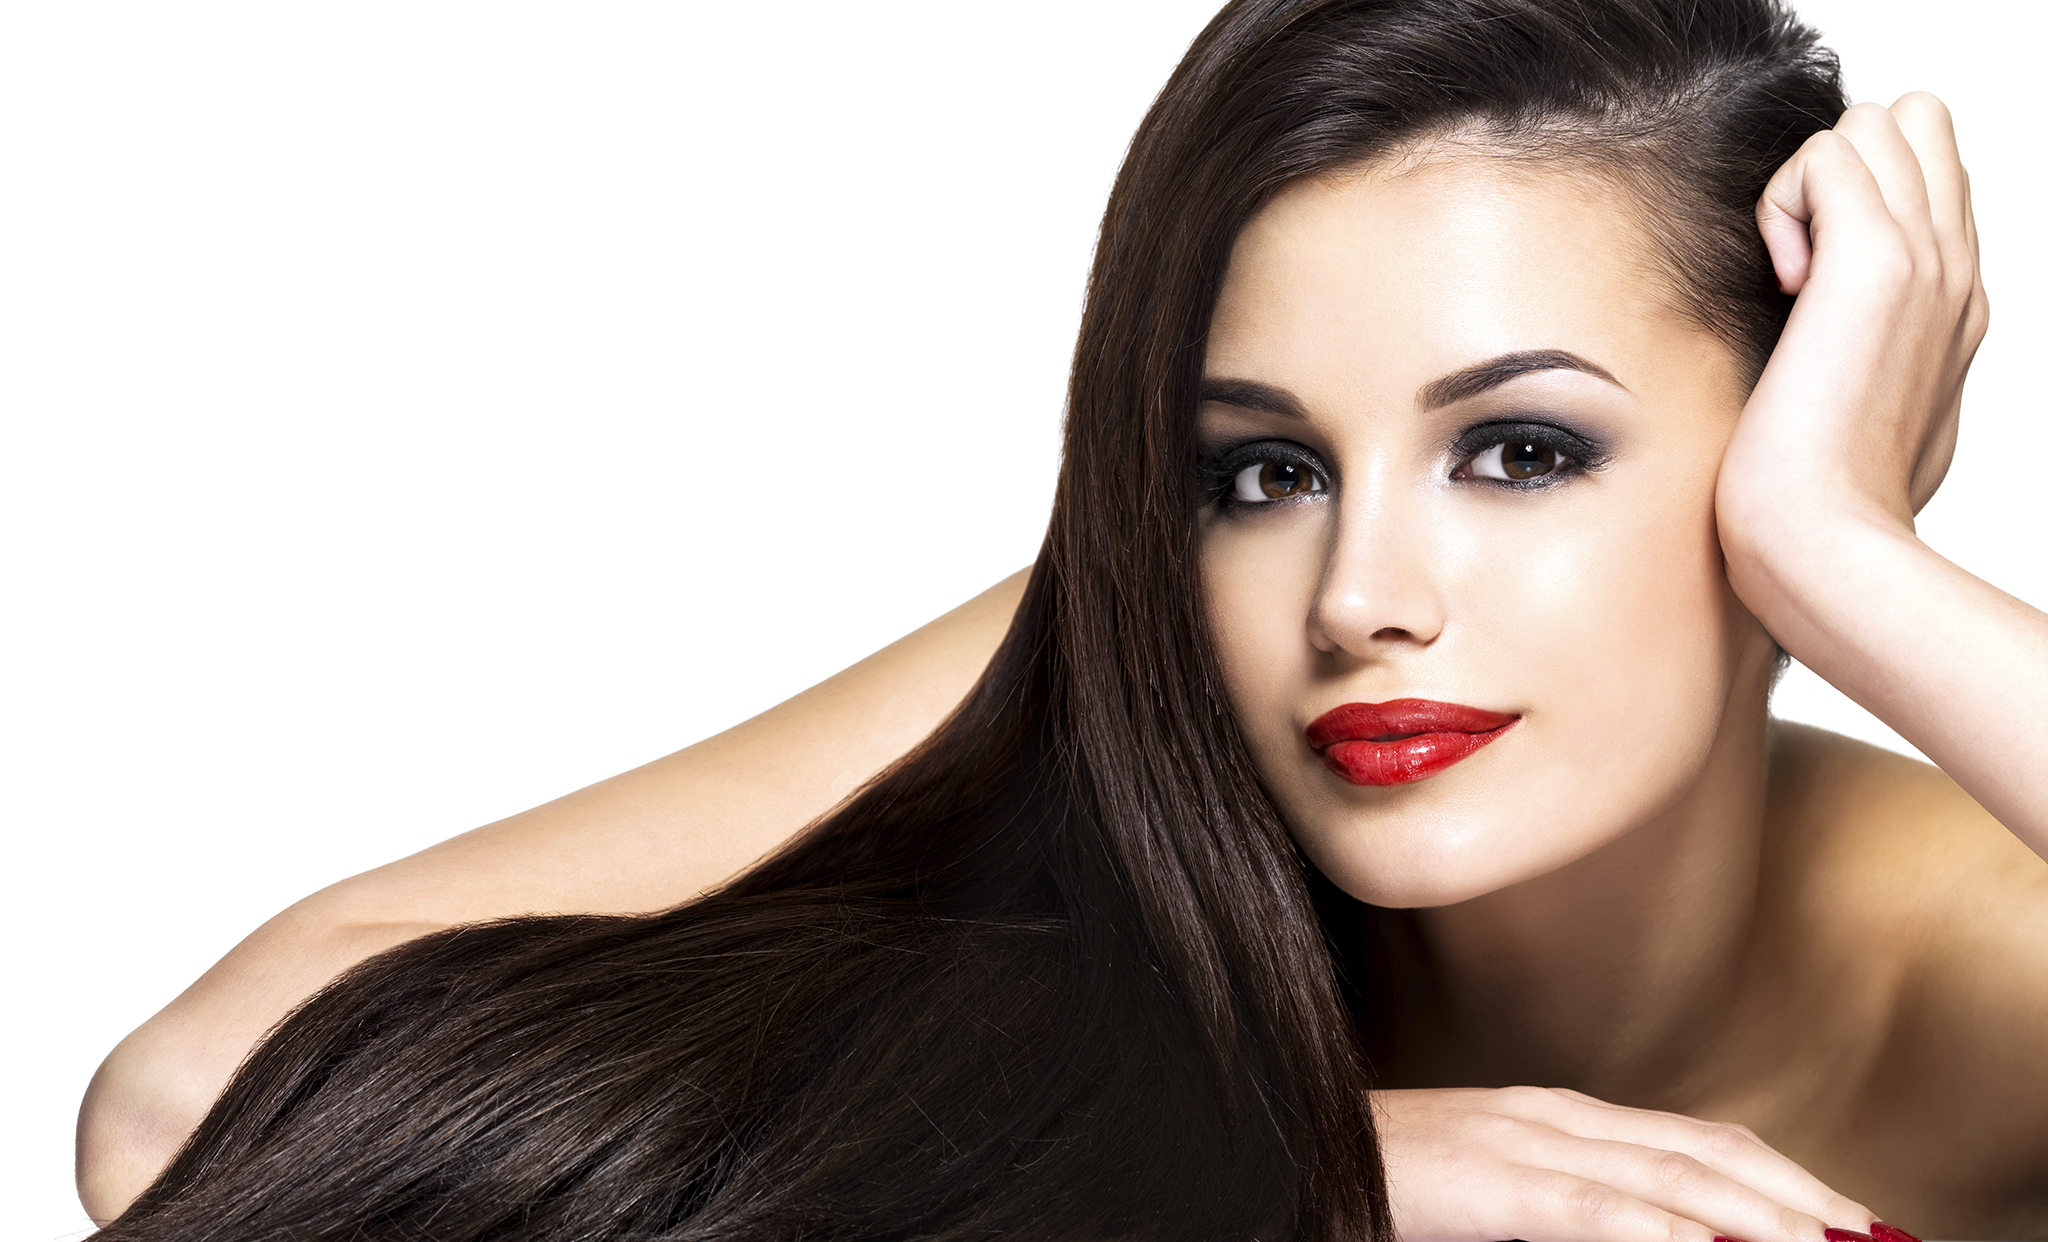 Get New Sharp Hair With Skin-safe Ink And Disposable Microblading Tools